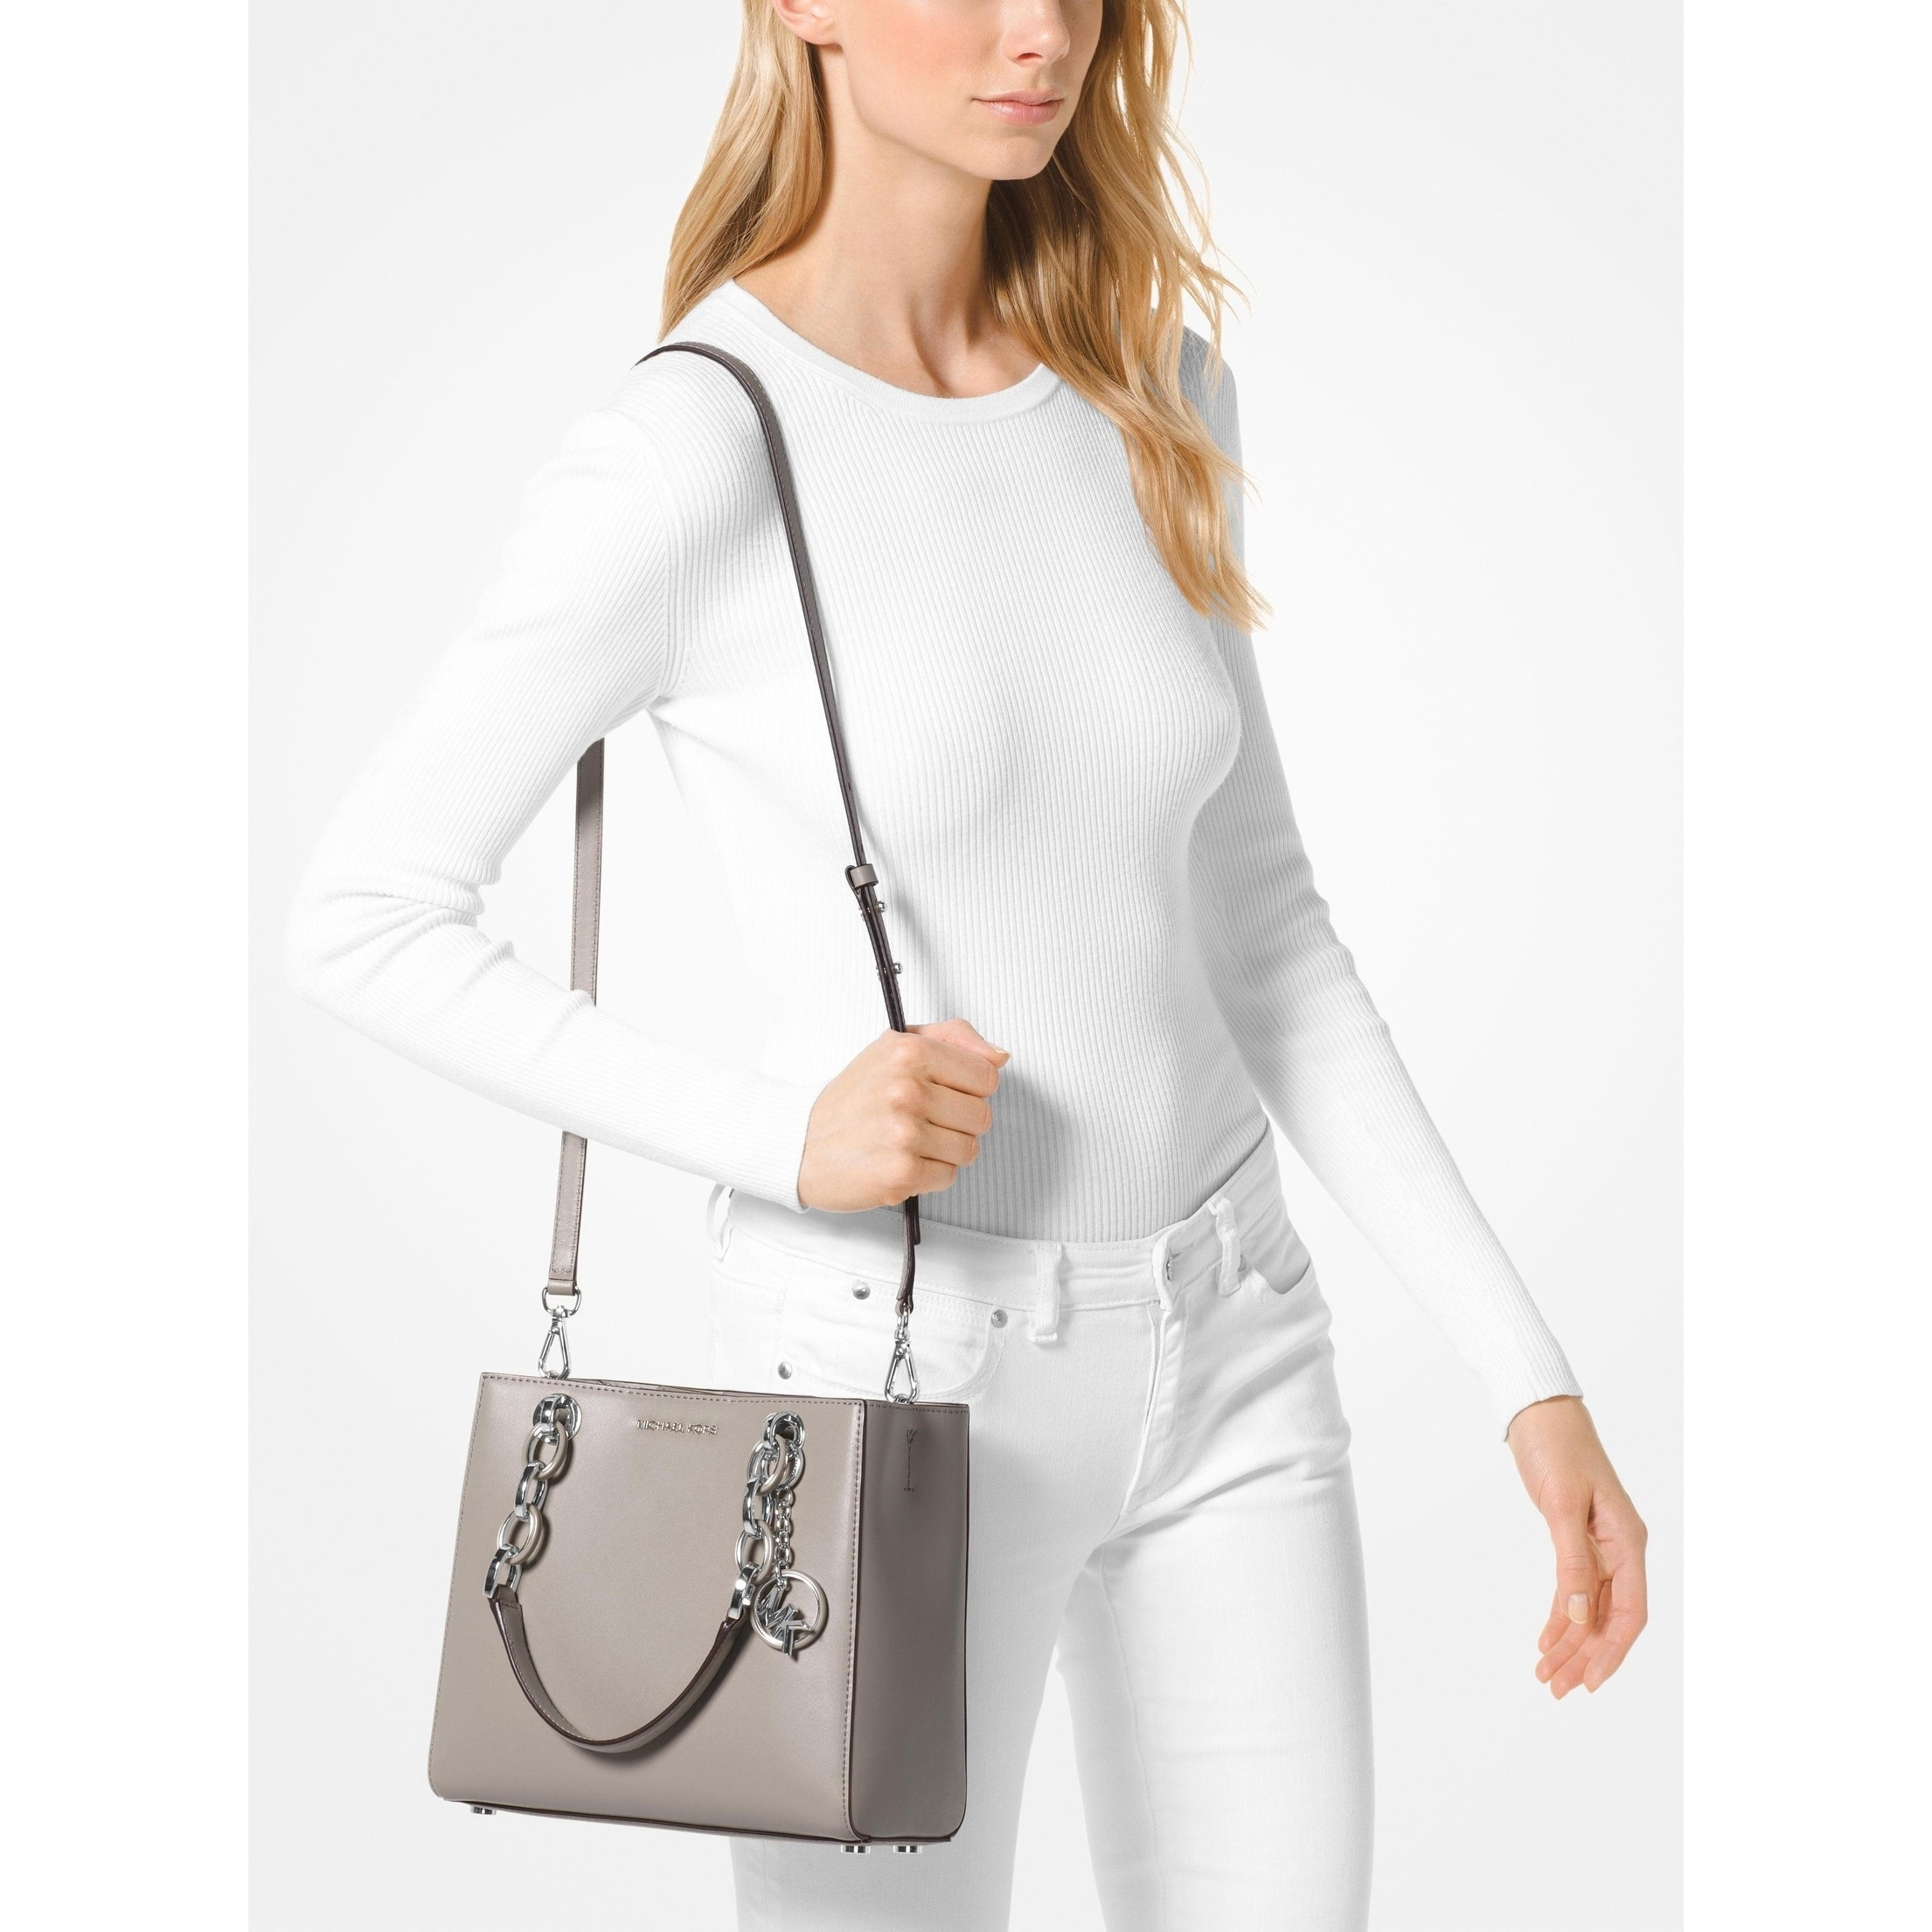 2199e81a1bb8b5 Shop Michael Kors Cynthia Dressy Leather Satchel Bag Grey/Silver - Ships To  Canada - Overstock - 25463836